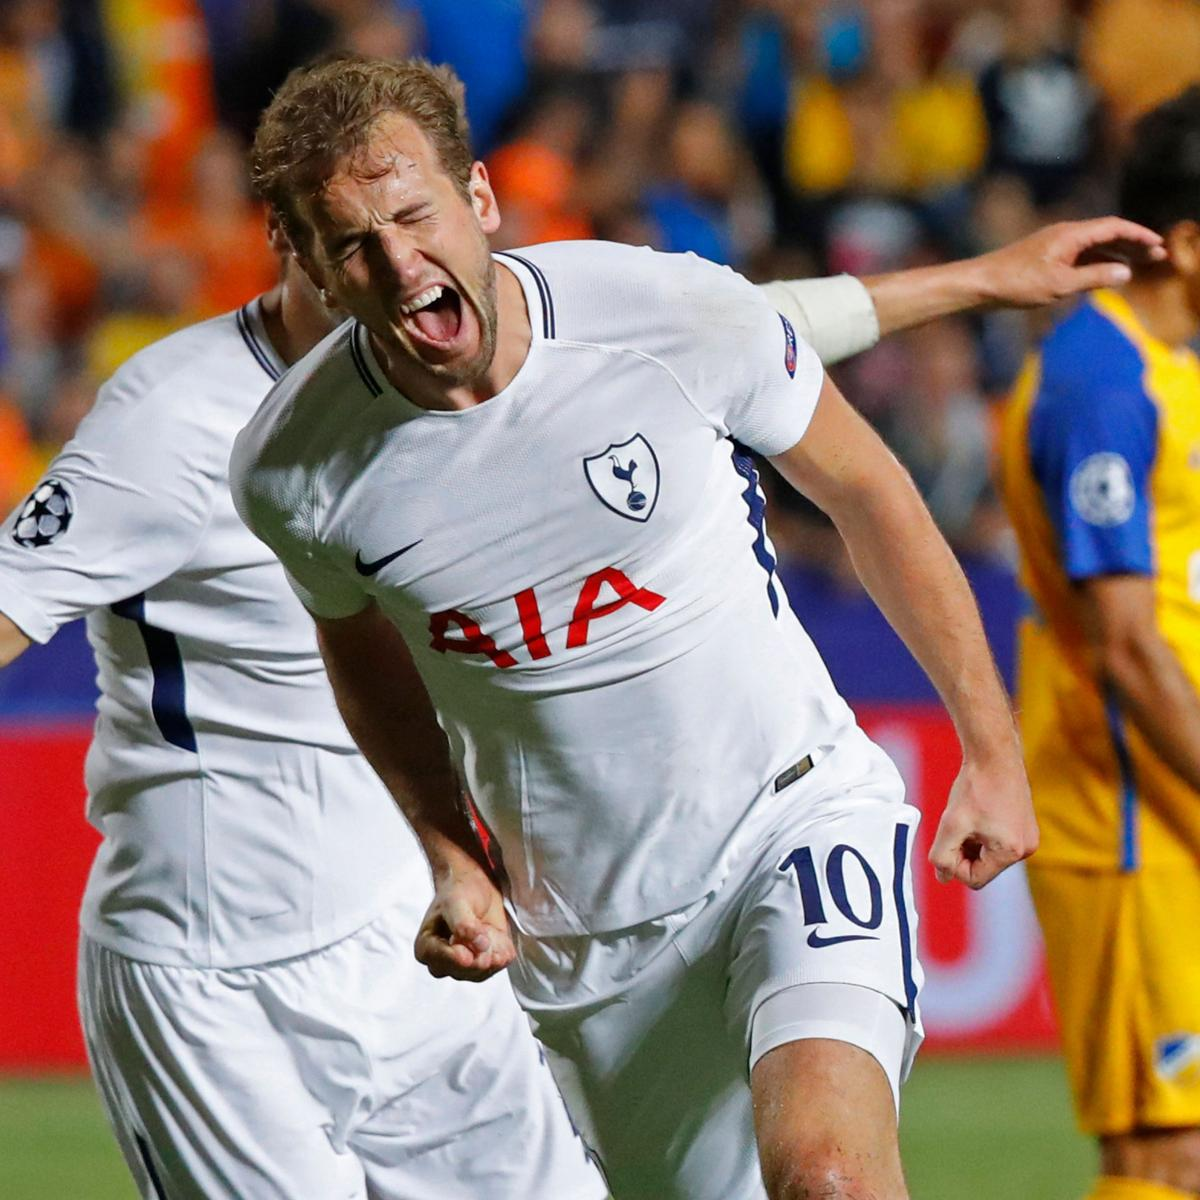 Tottenham 3 Fulham 1 Match Highlights Harry Kane Scores: Champions League Results 2017: Latest Group Tables After